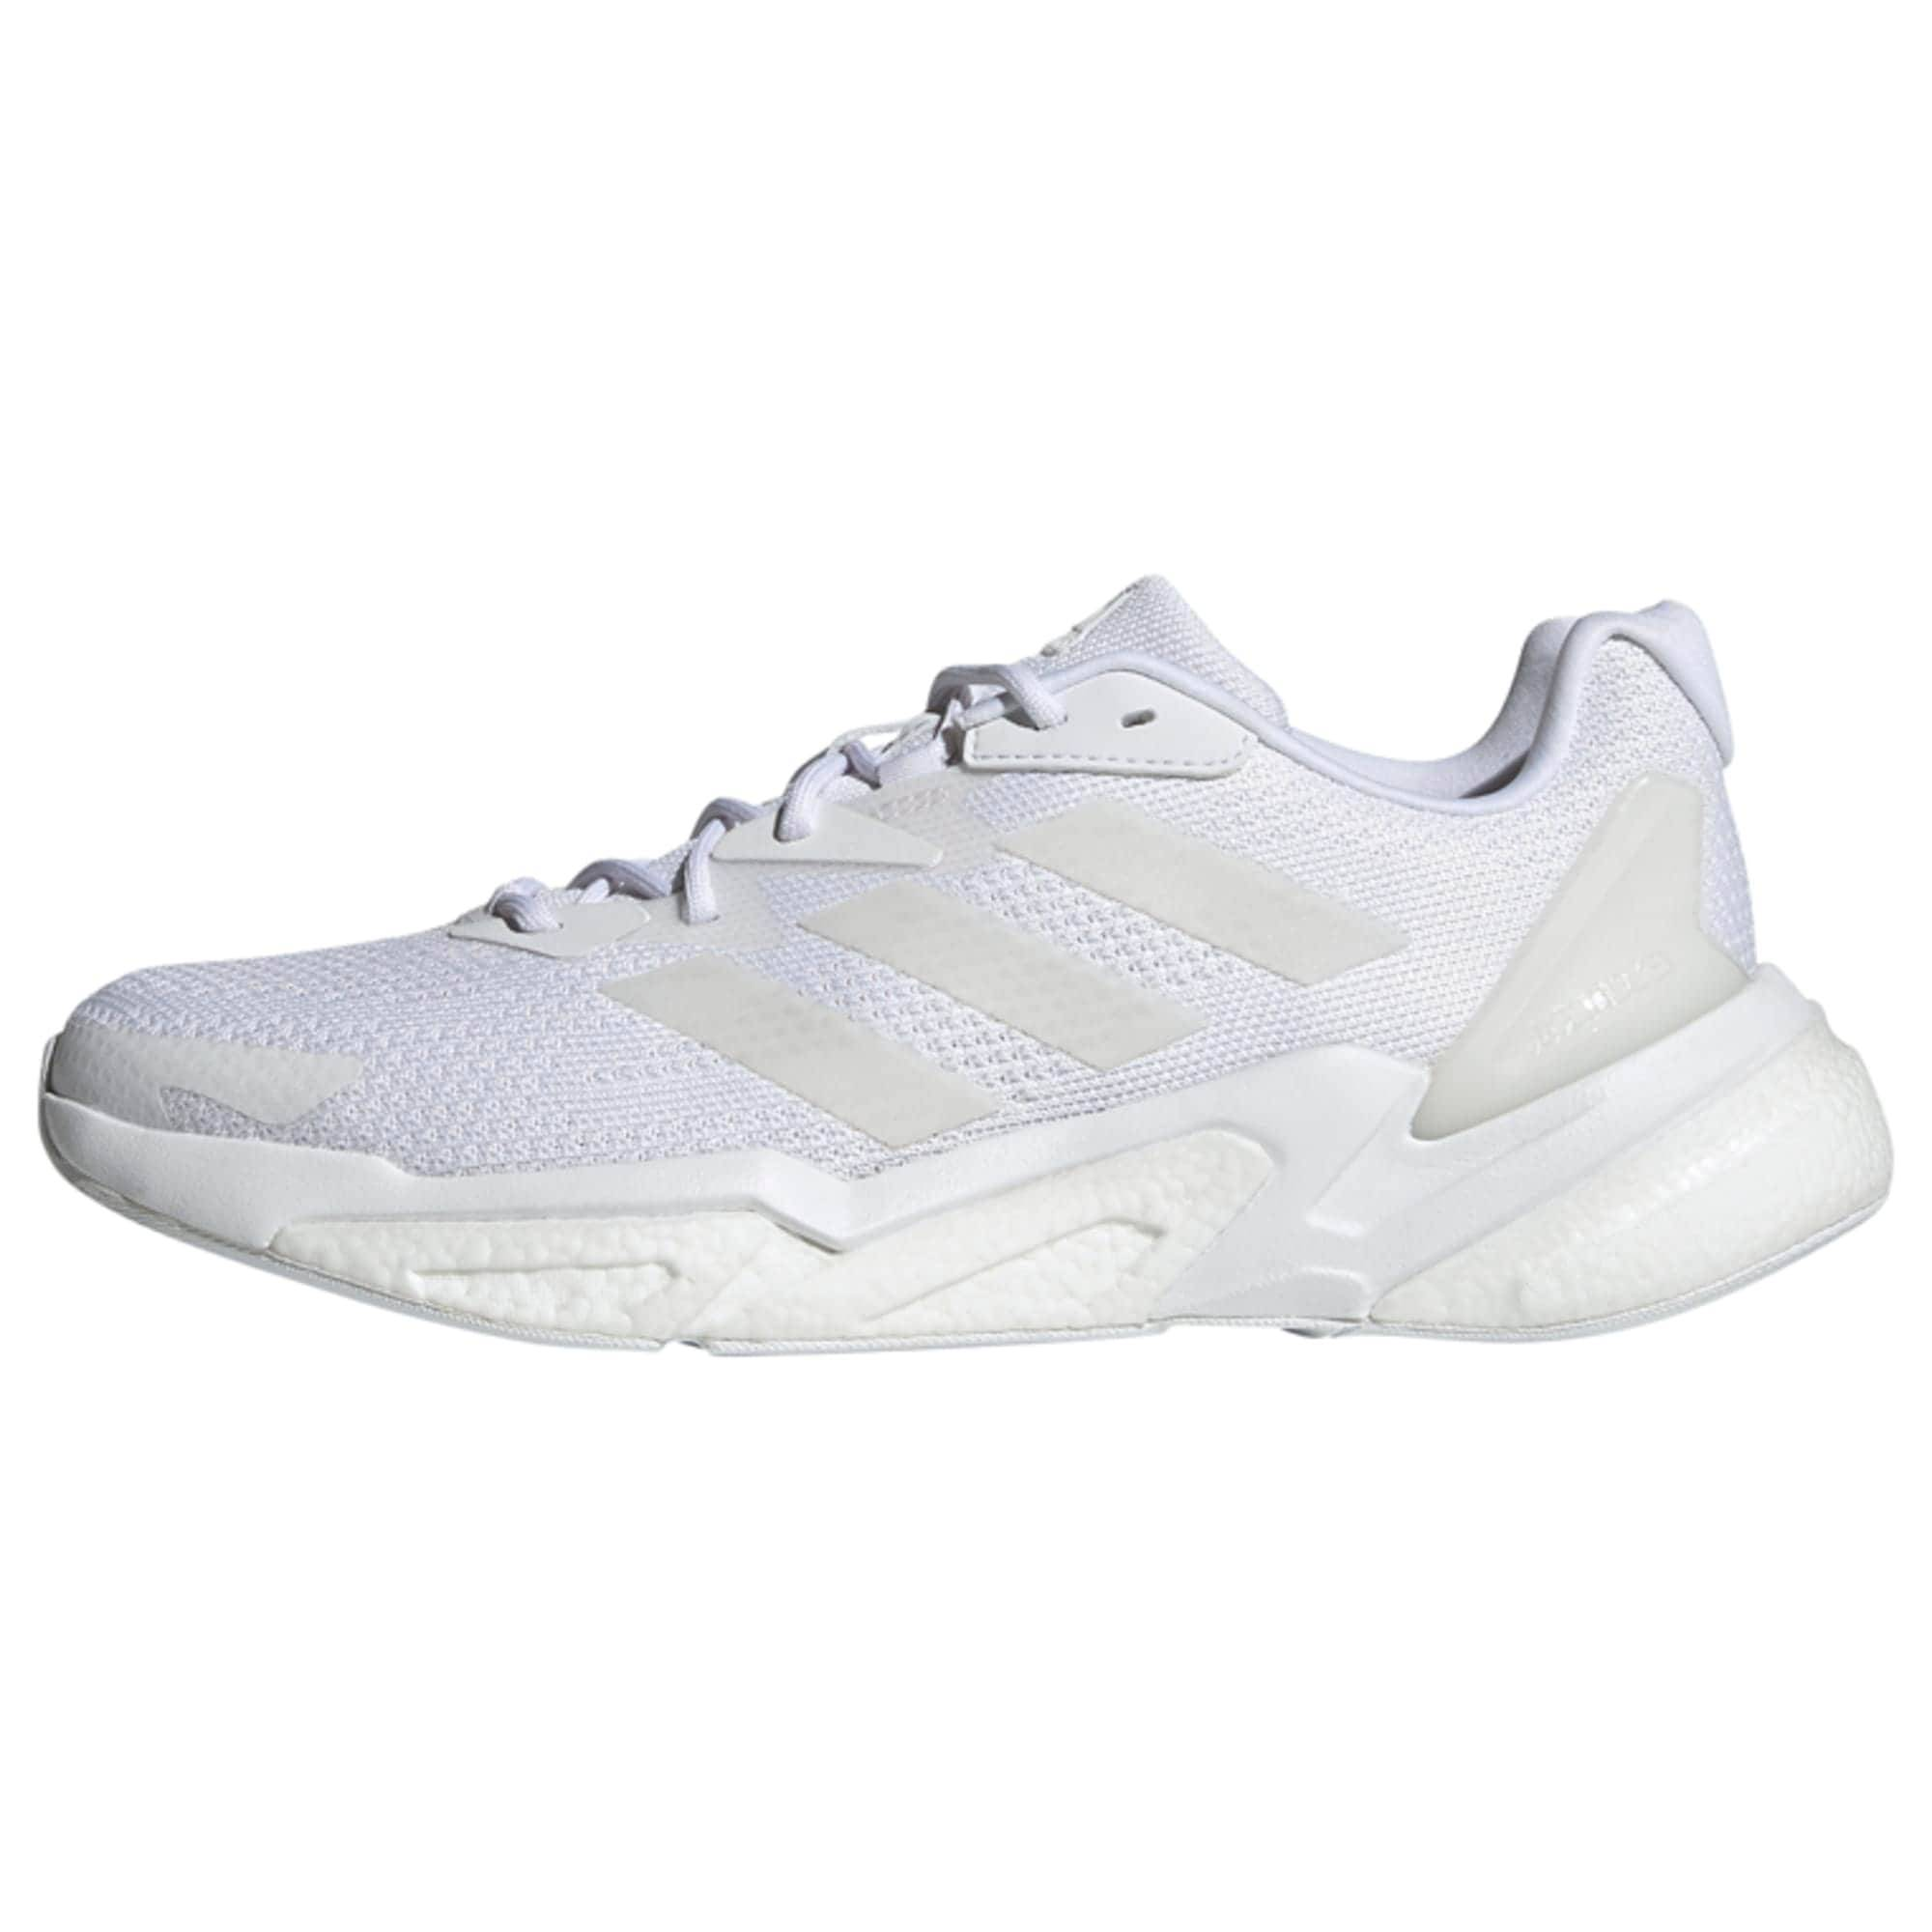 ADIDAS PERFORMANCE Chaussure de course  - Blanc - Taille: 8.5 - male